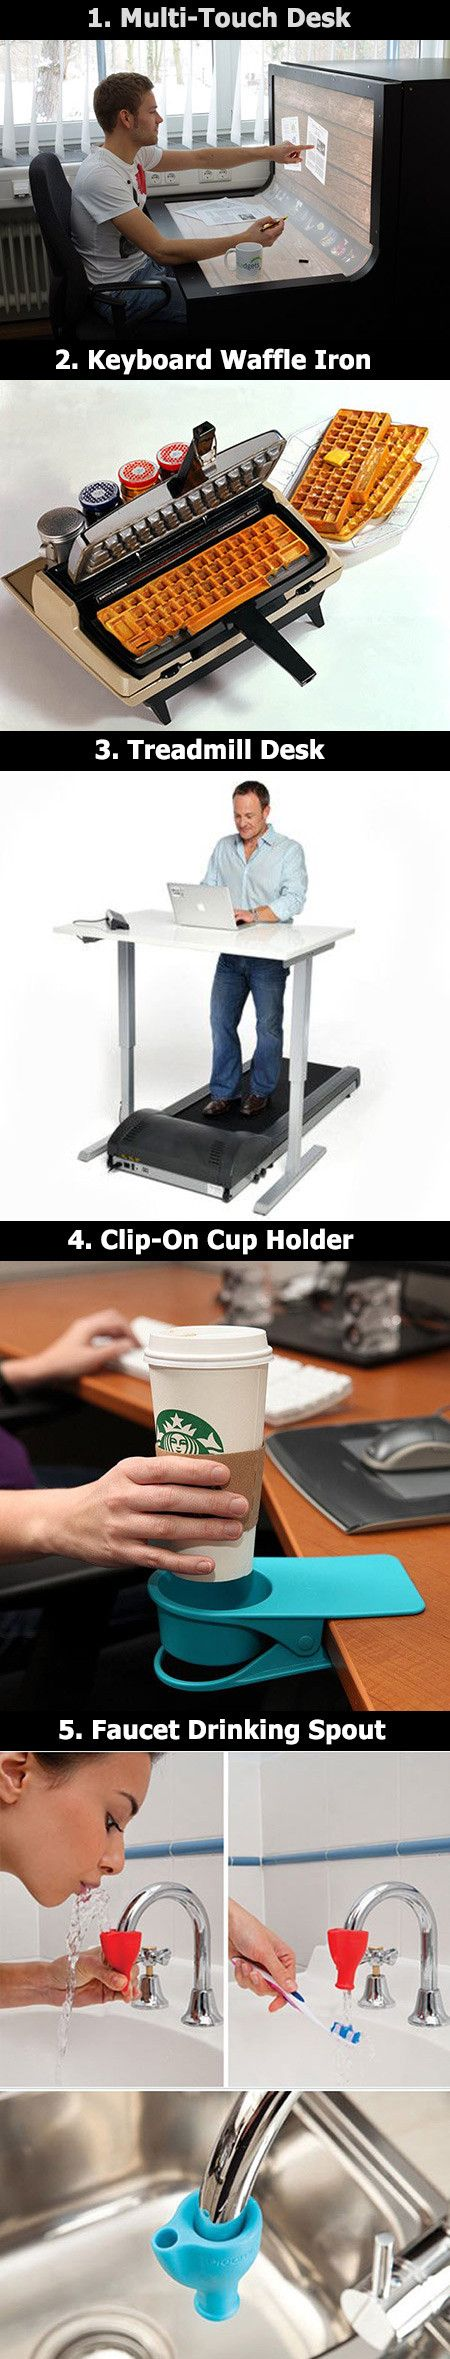 Here are some fun and creative home gadgets that would be freakin AWESOME to have